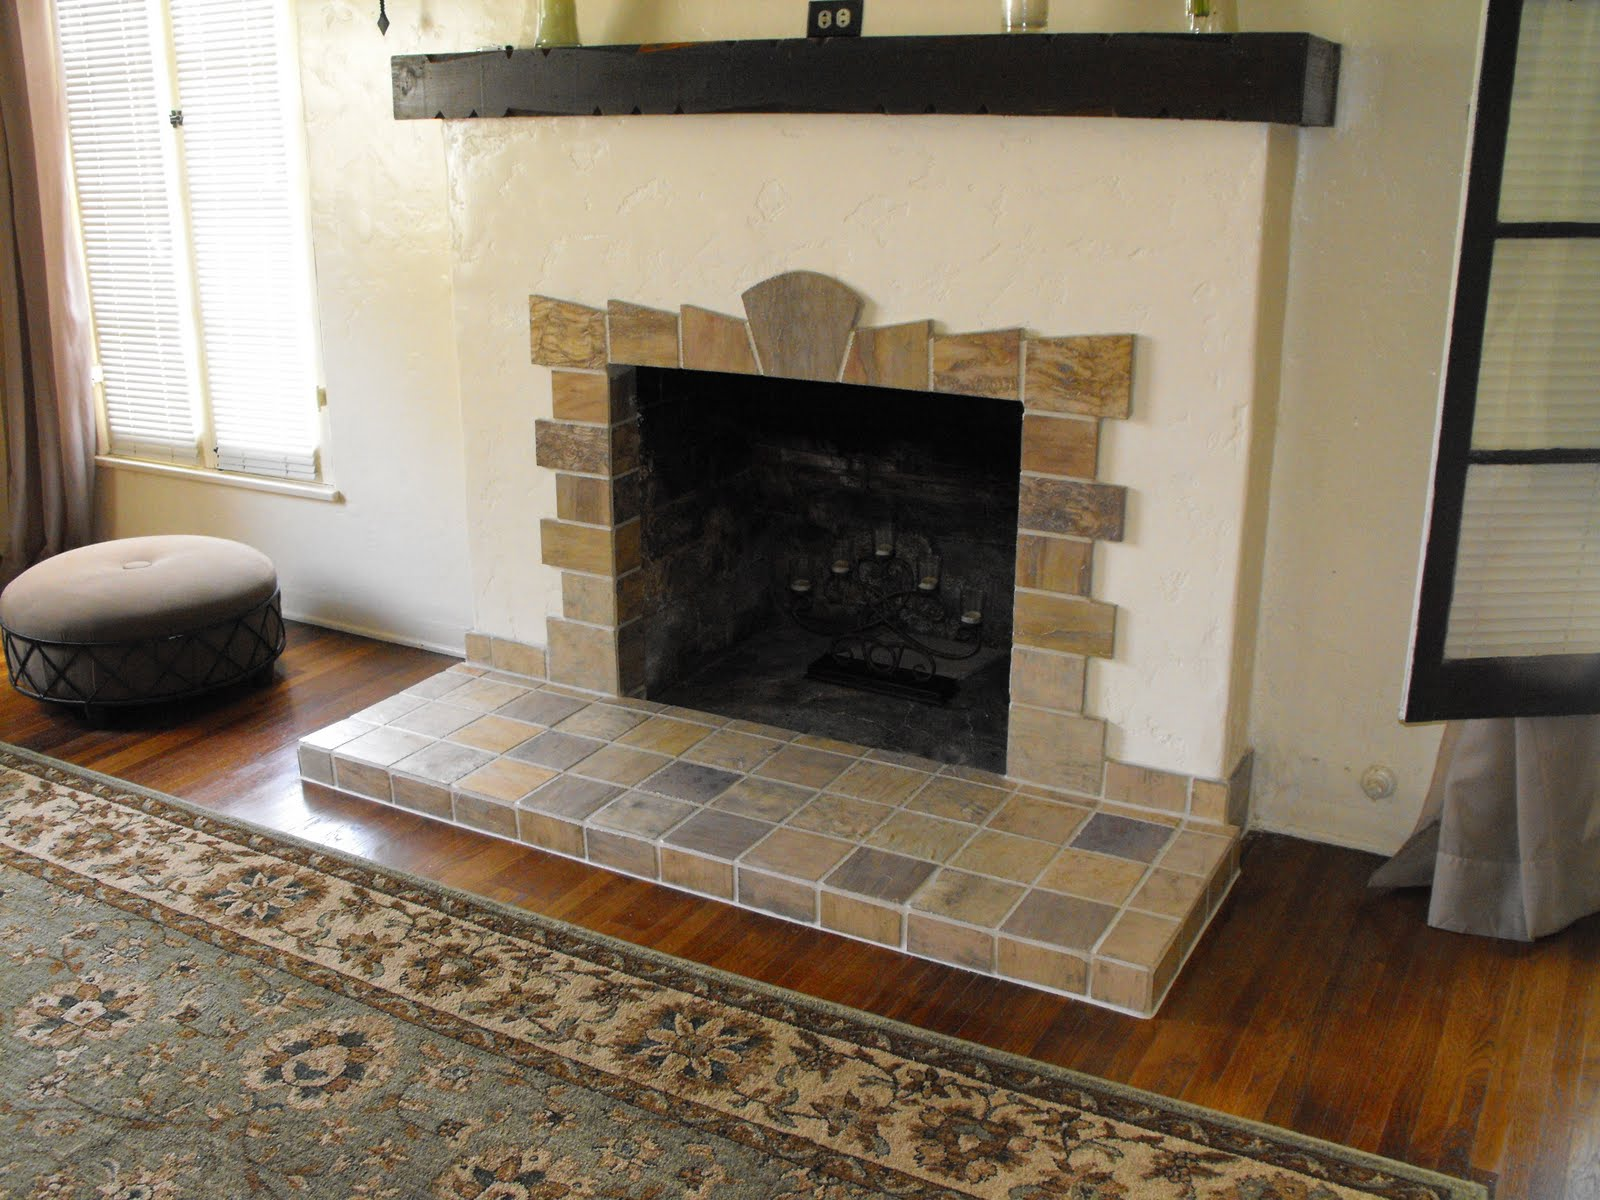 Bungalow Fireplace Mantel New Home Construction New Tile Fireplace For A 1920 39s